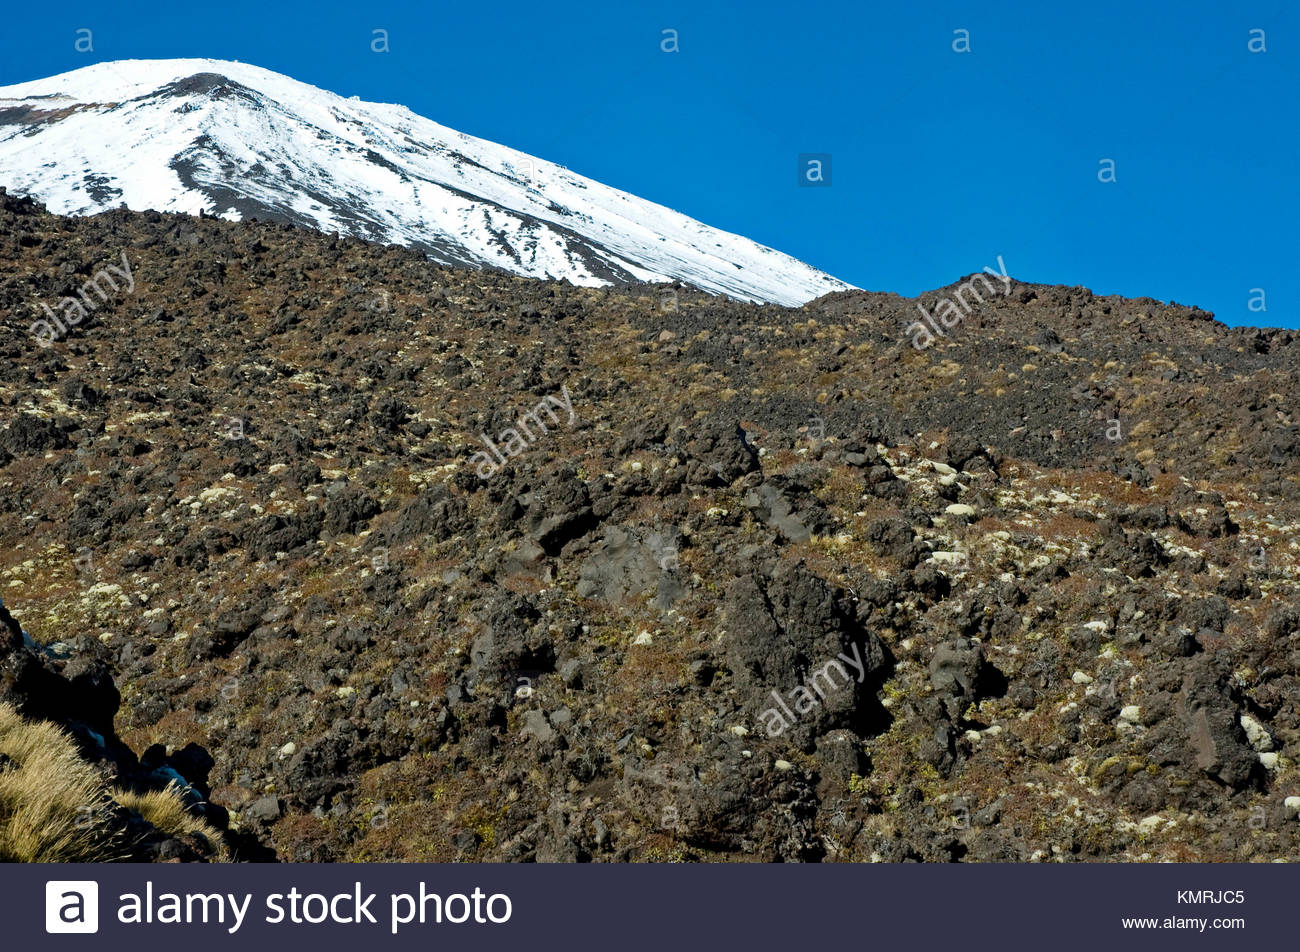 Mount Ngarahoe, Tongariro National Park, Tongariro, North Island, New Zealand - Stock Image